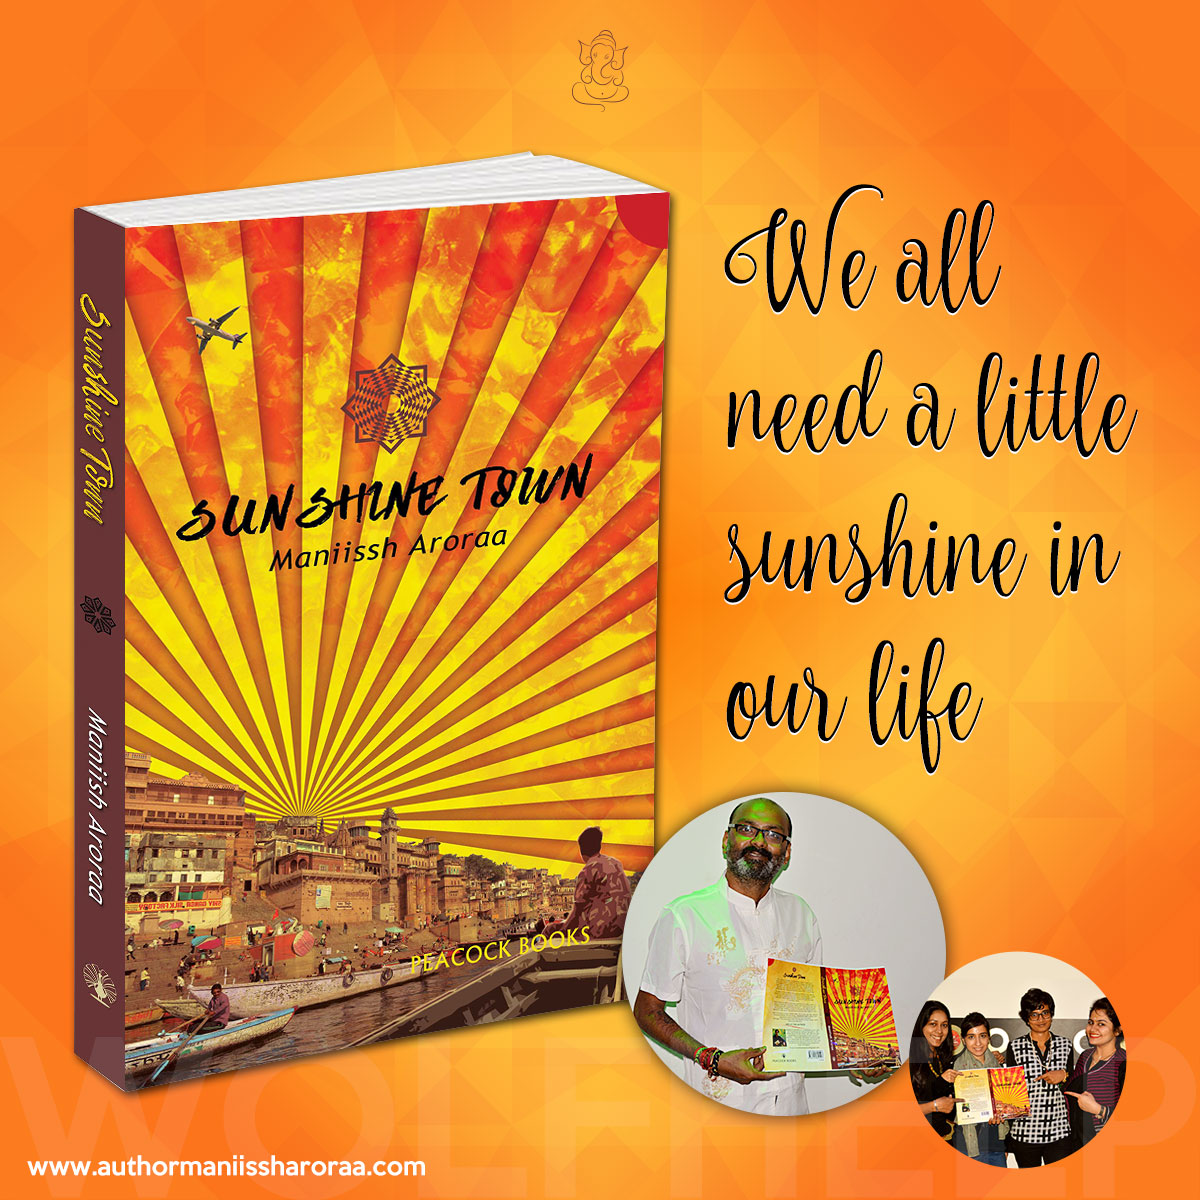 Review Pen: Sunshine Town By Maniissh Aroraa